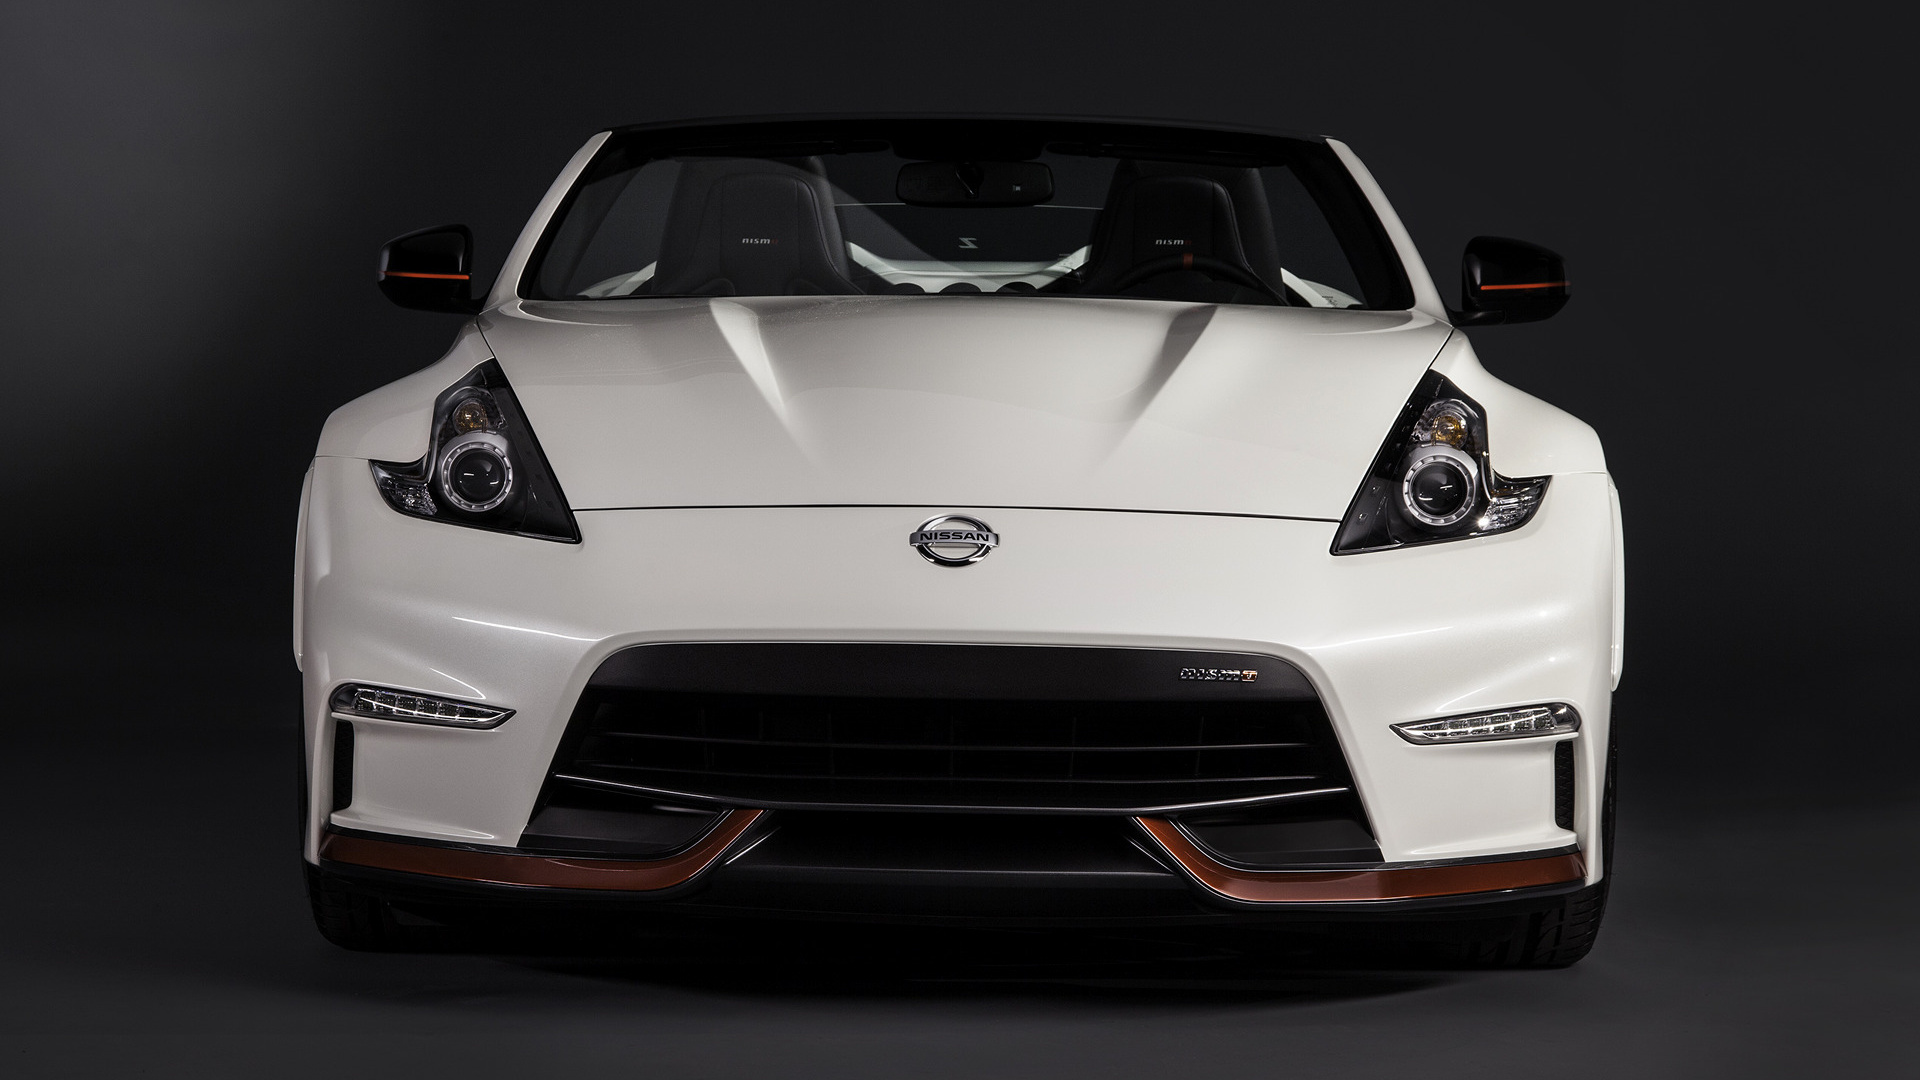 Vehicles   Nissan 370Z Nismo Car White Car Concept Car Roadster Sport Car  Wallpaper